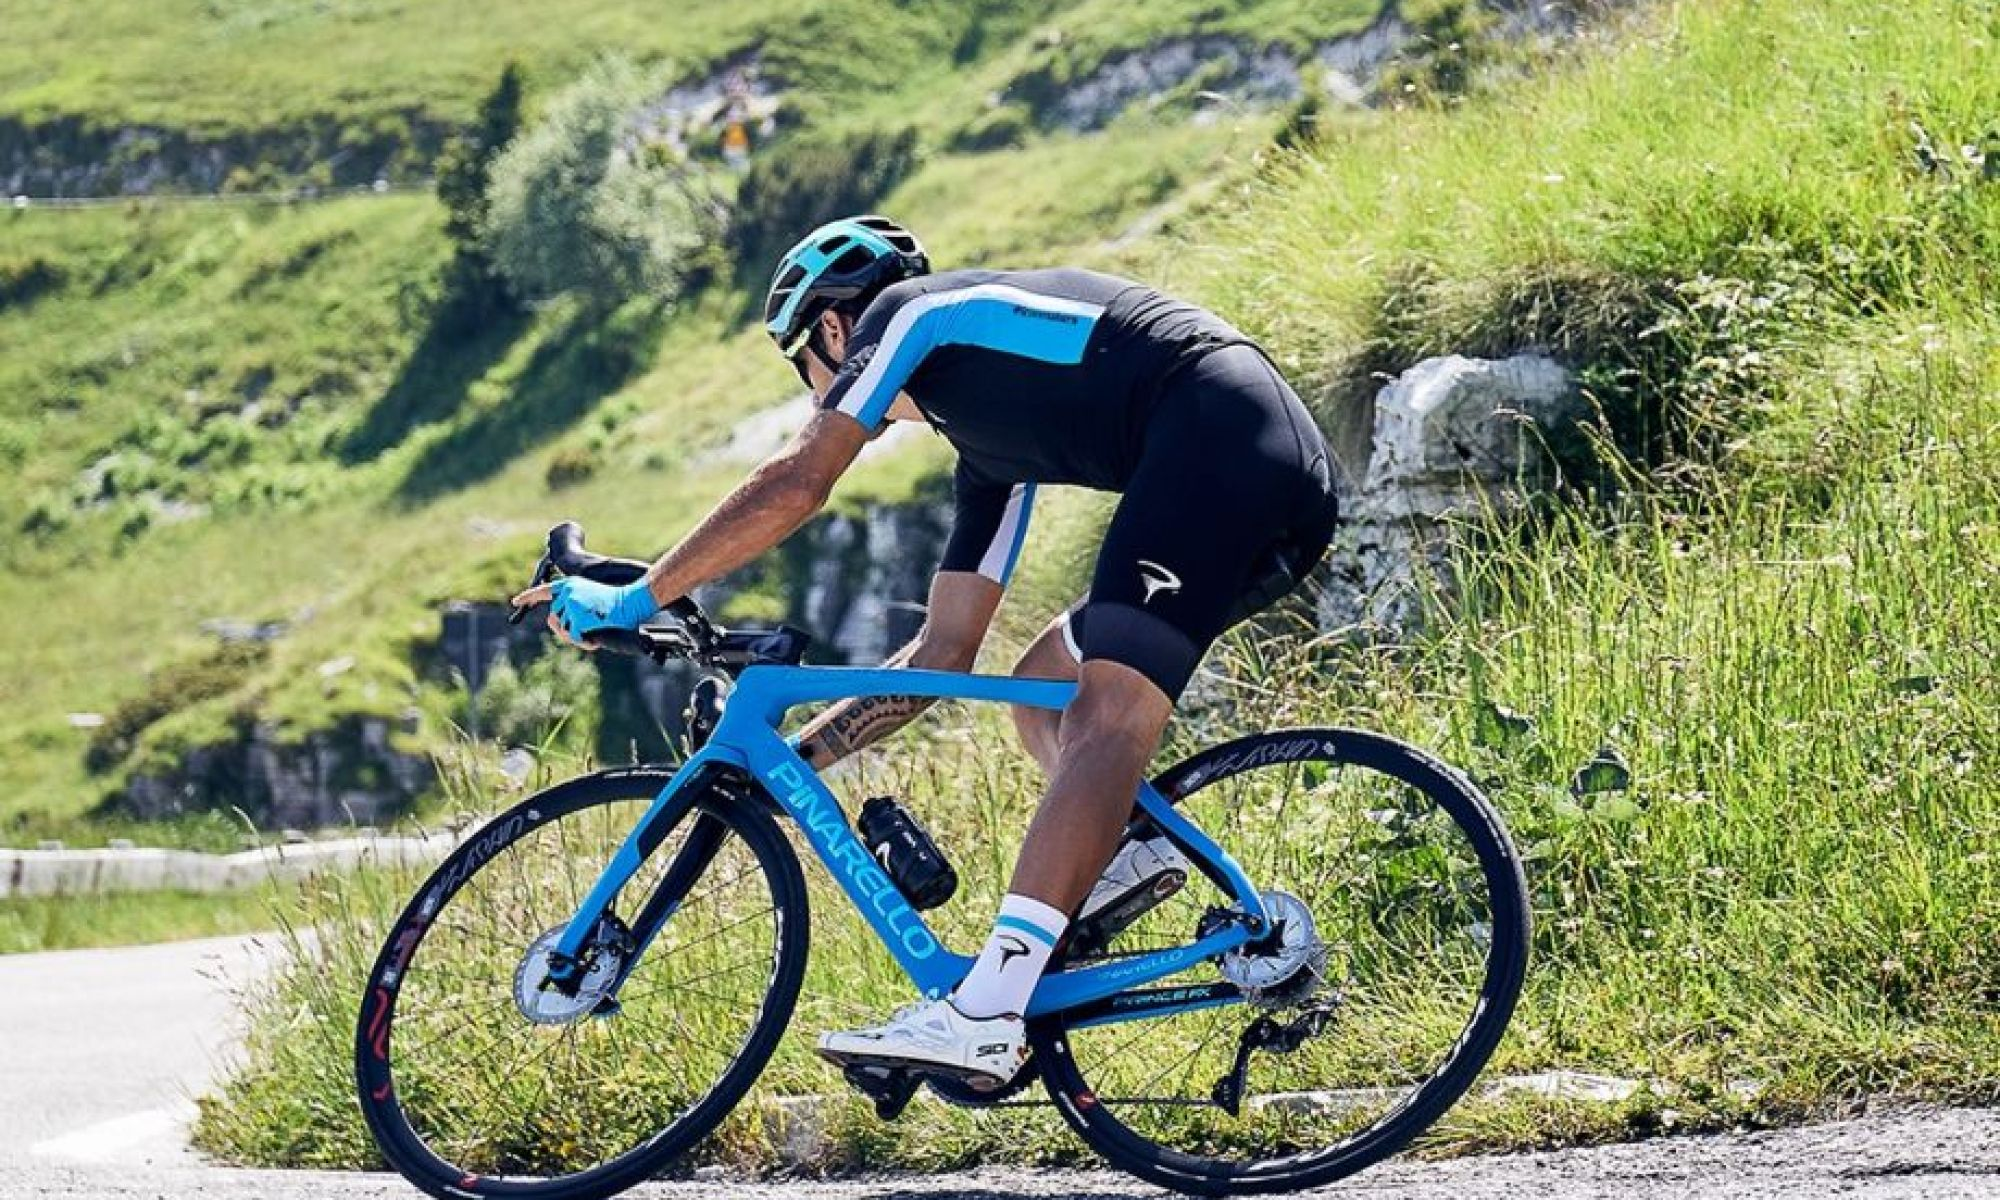 Pinarello's Prince gets aero front end alongside comfort focused updates